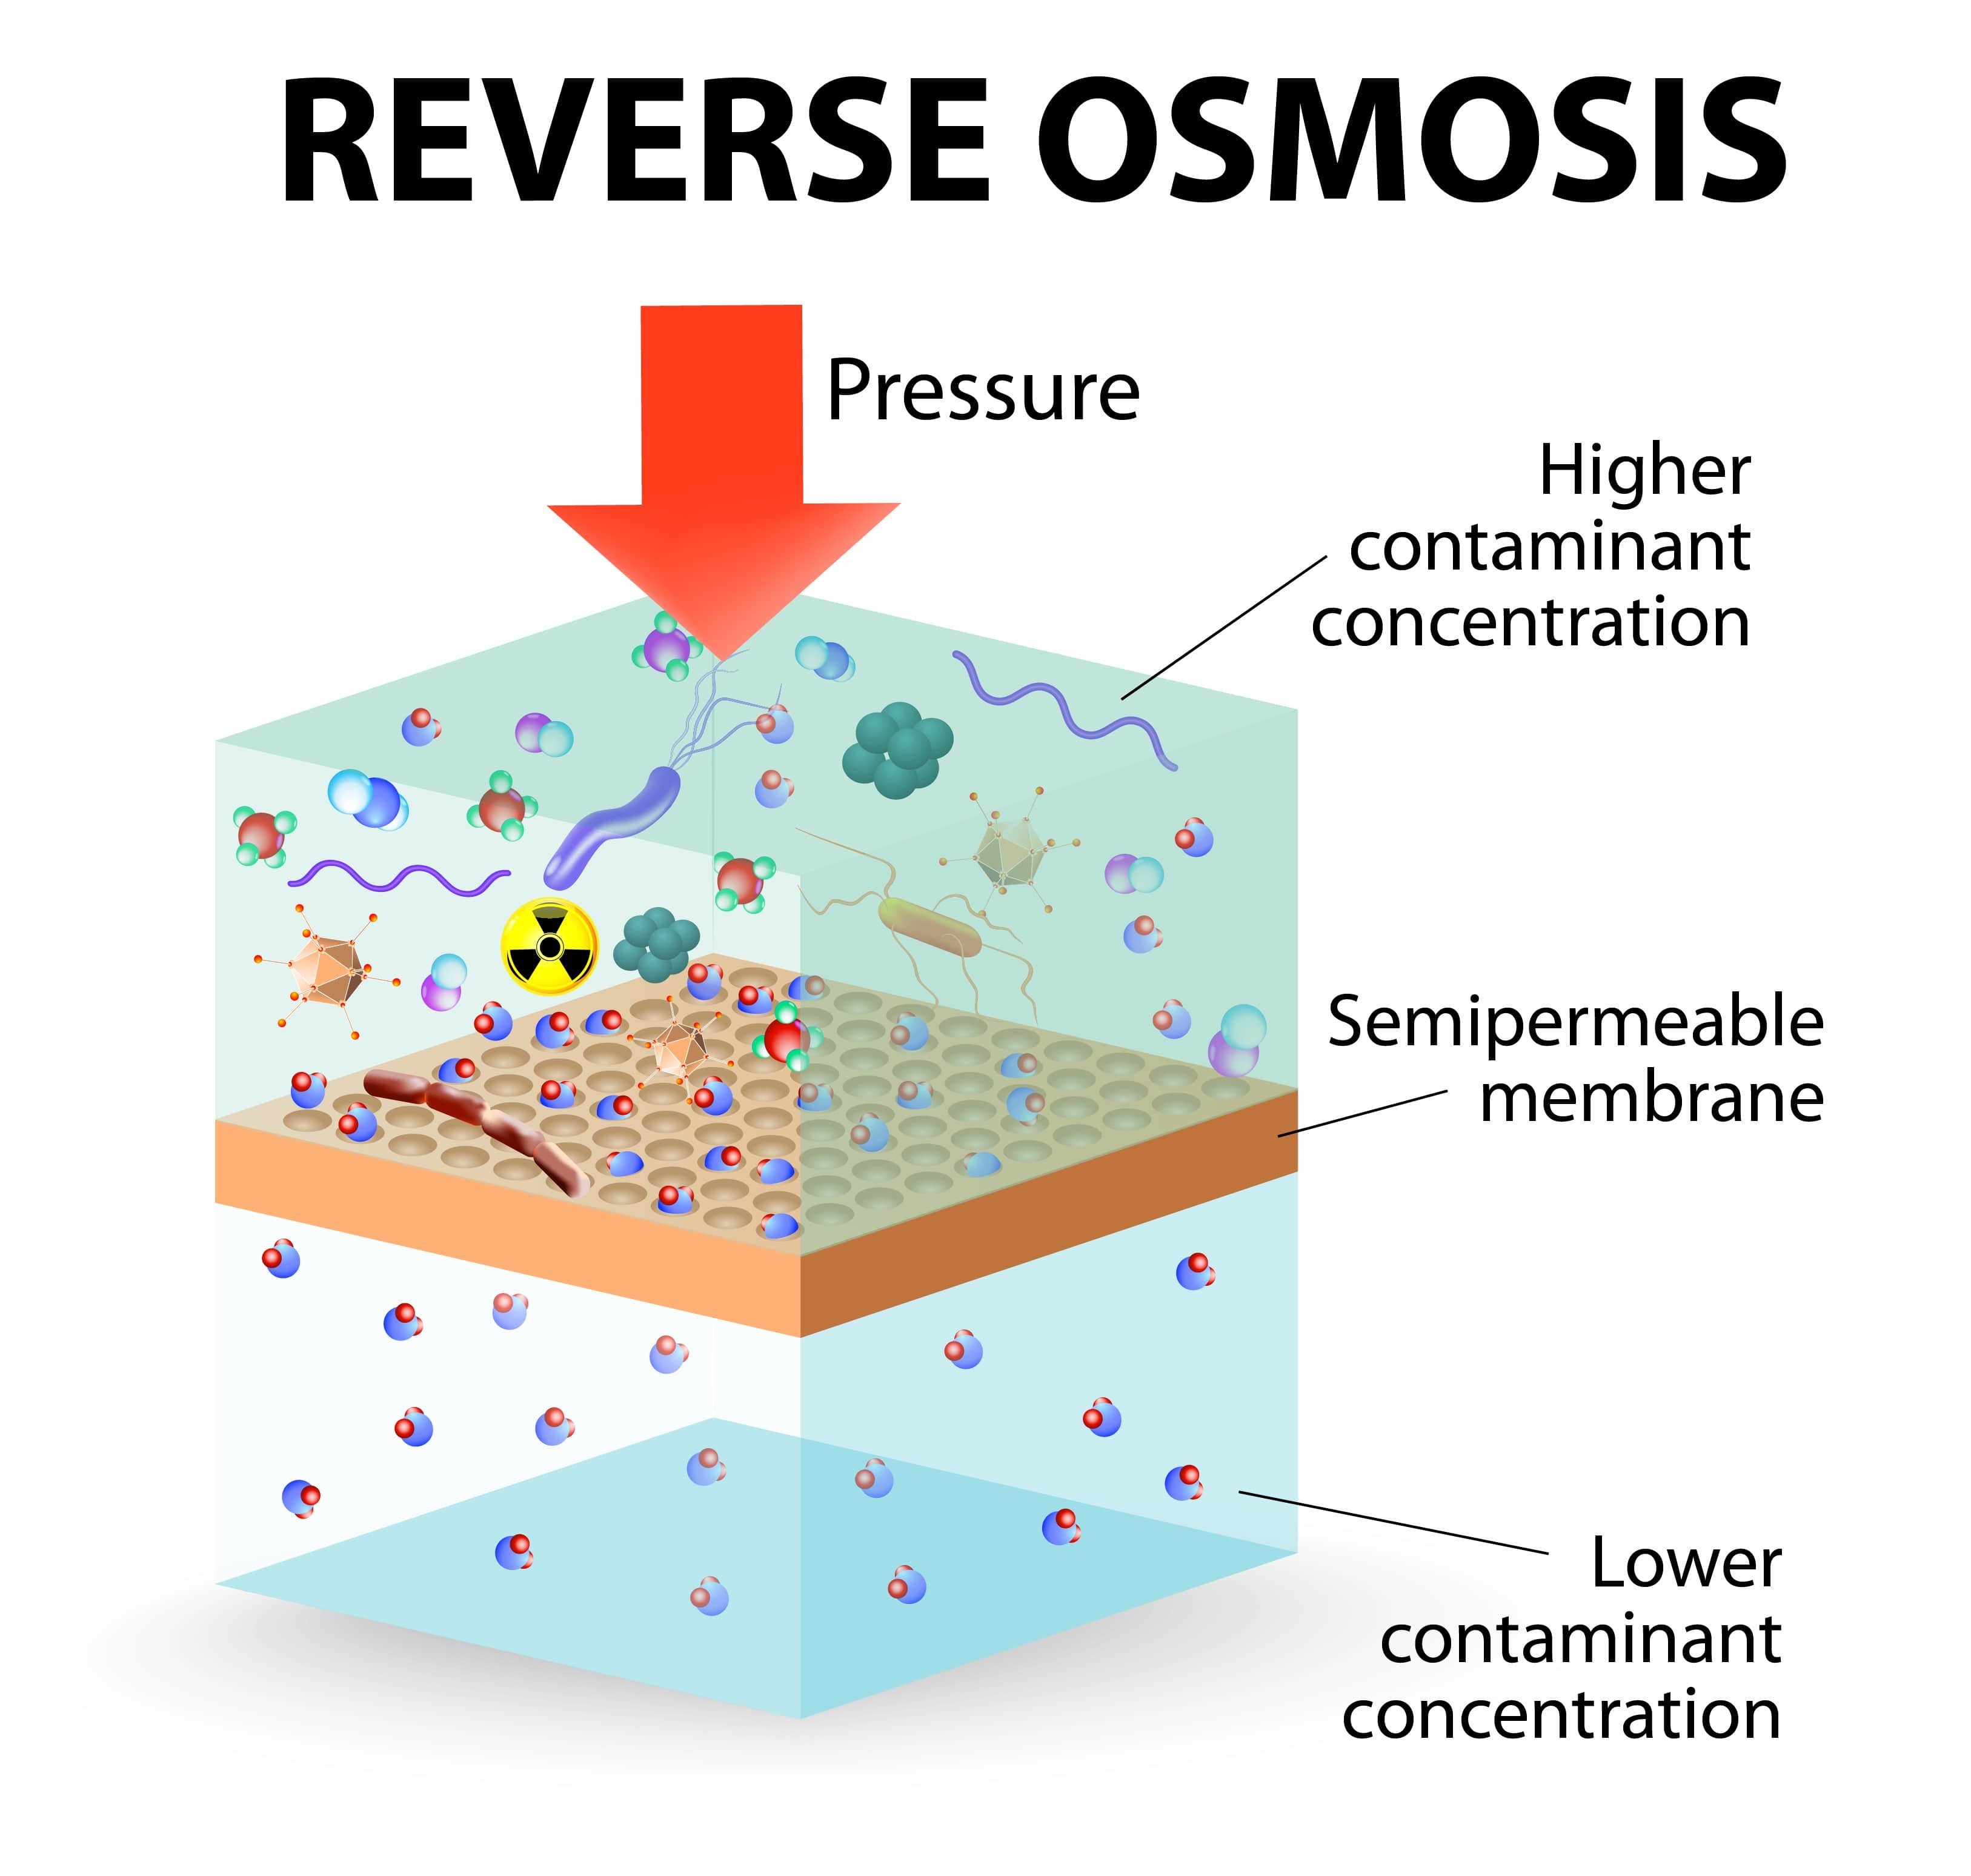 Reverse Osmosis infographic